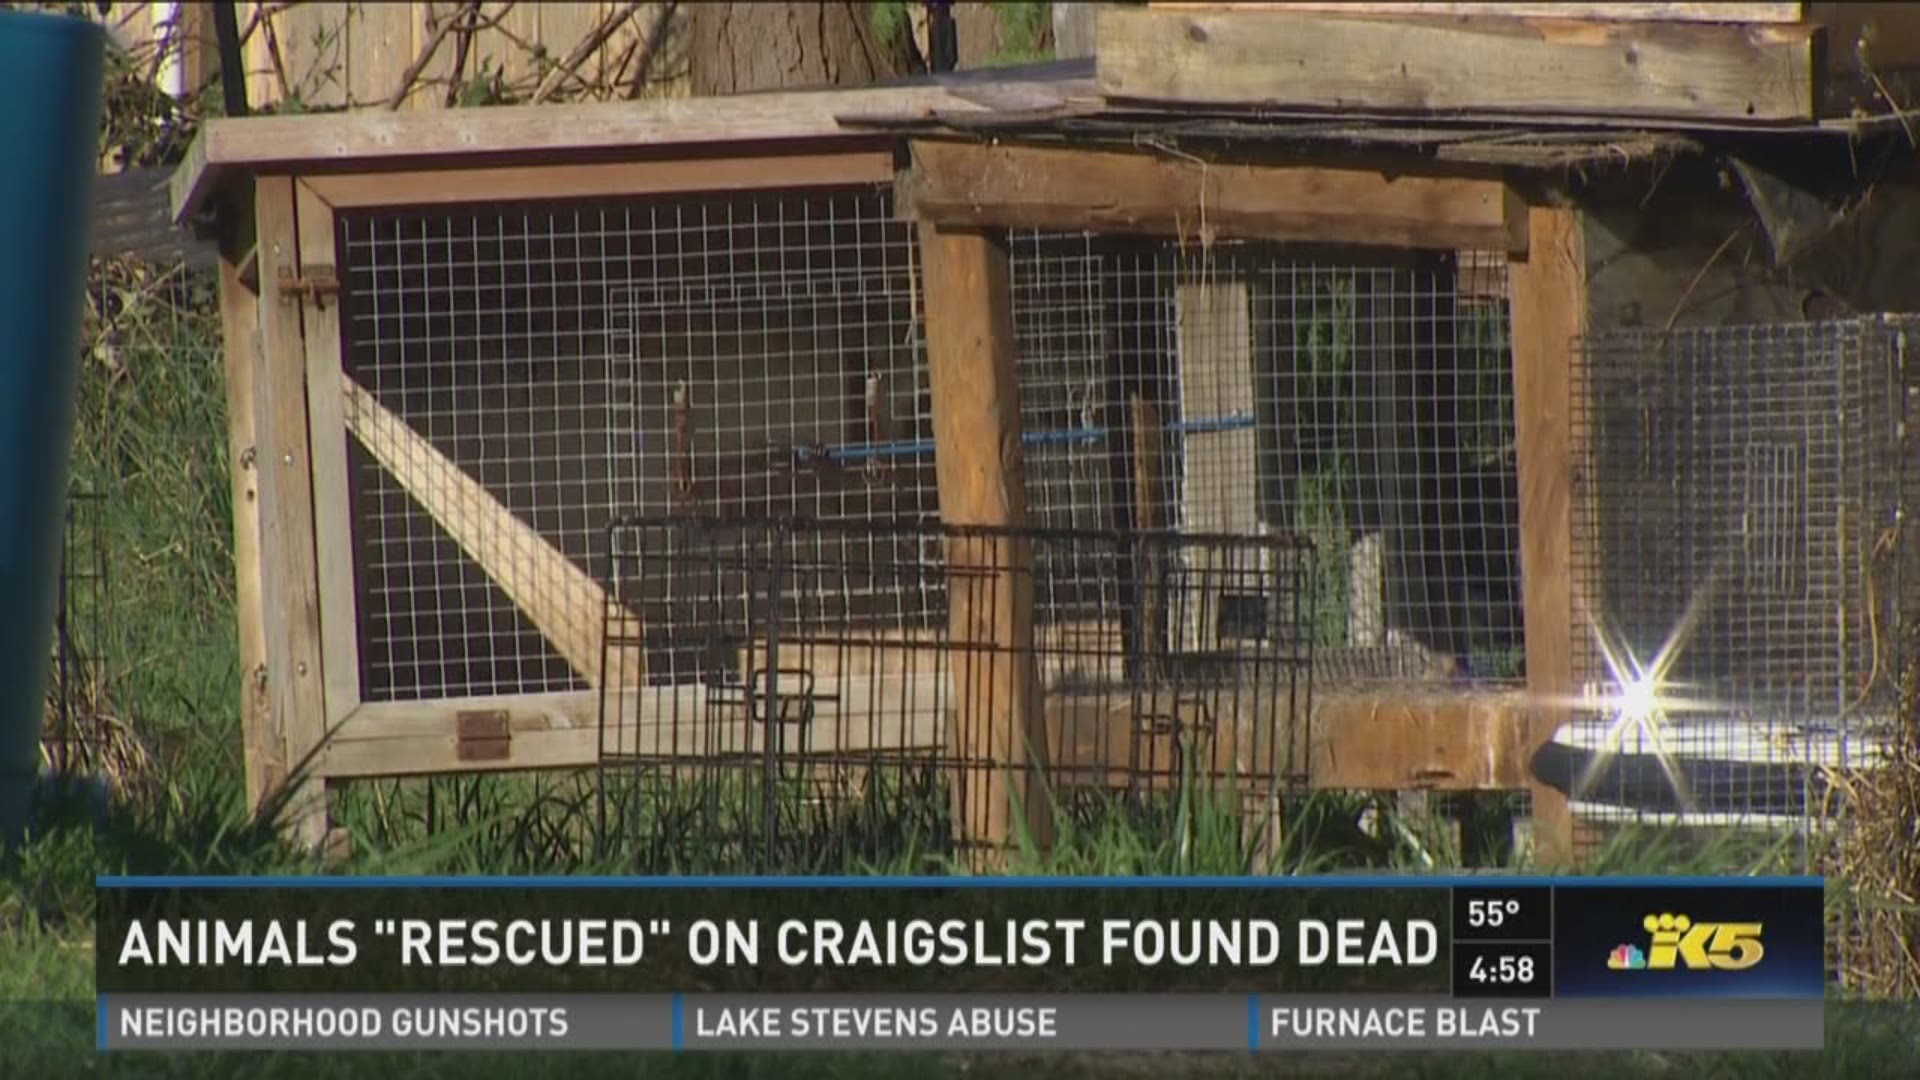 Man Arrested For Torturing Animals Found On Craigslist